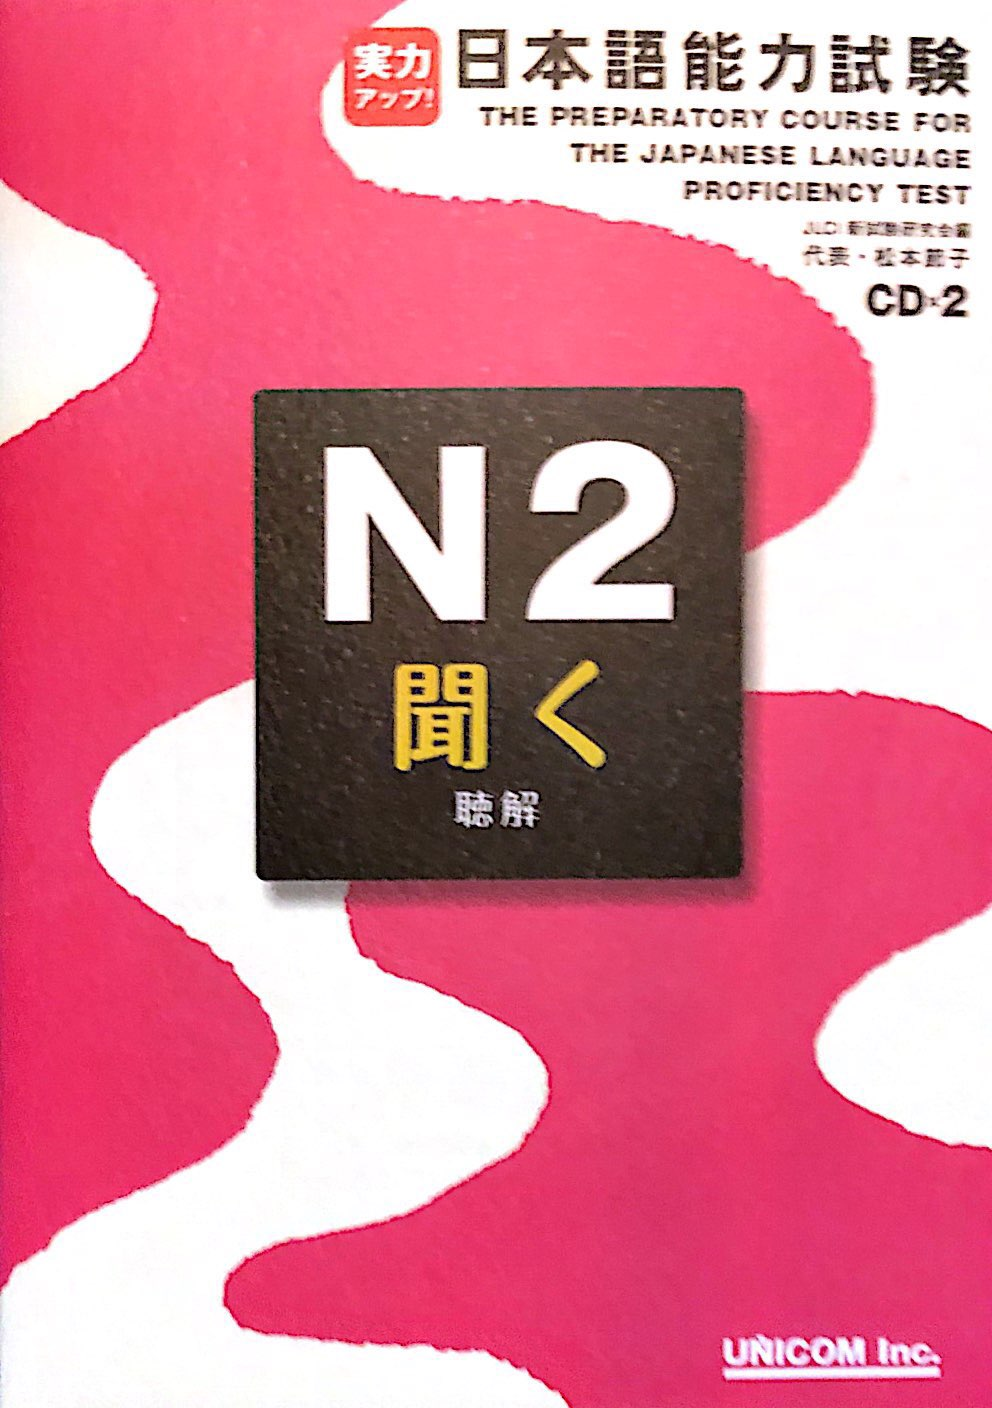 The Preparatory Course for the Japanese Language Proficiency Test N2 Listening Comprehension - The Japan Shop